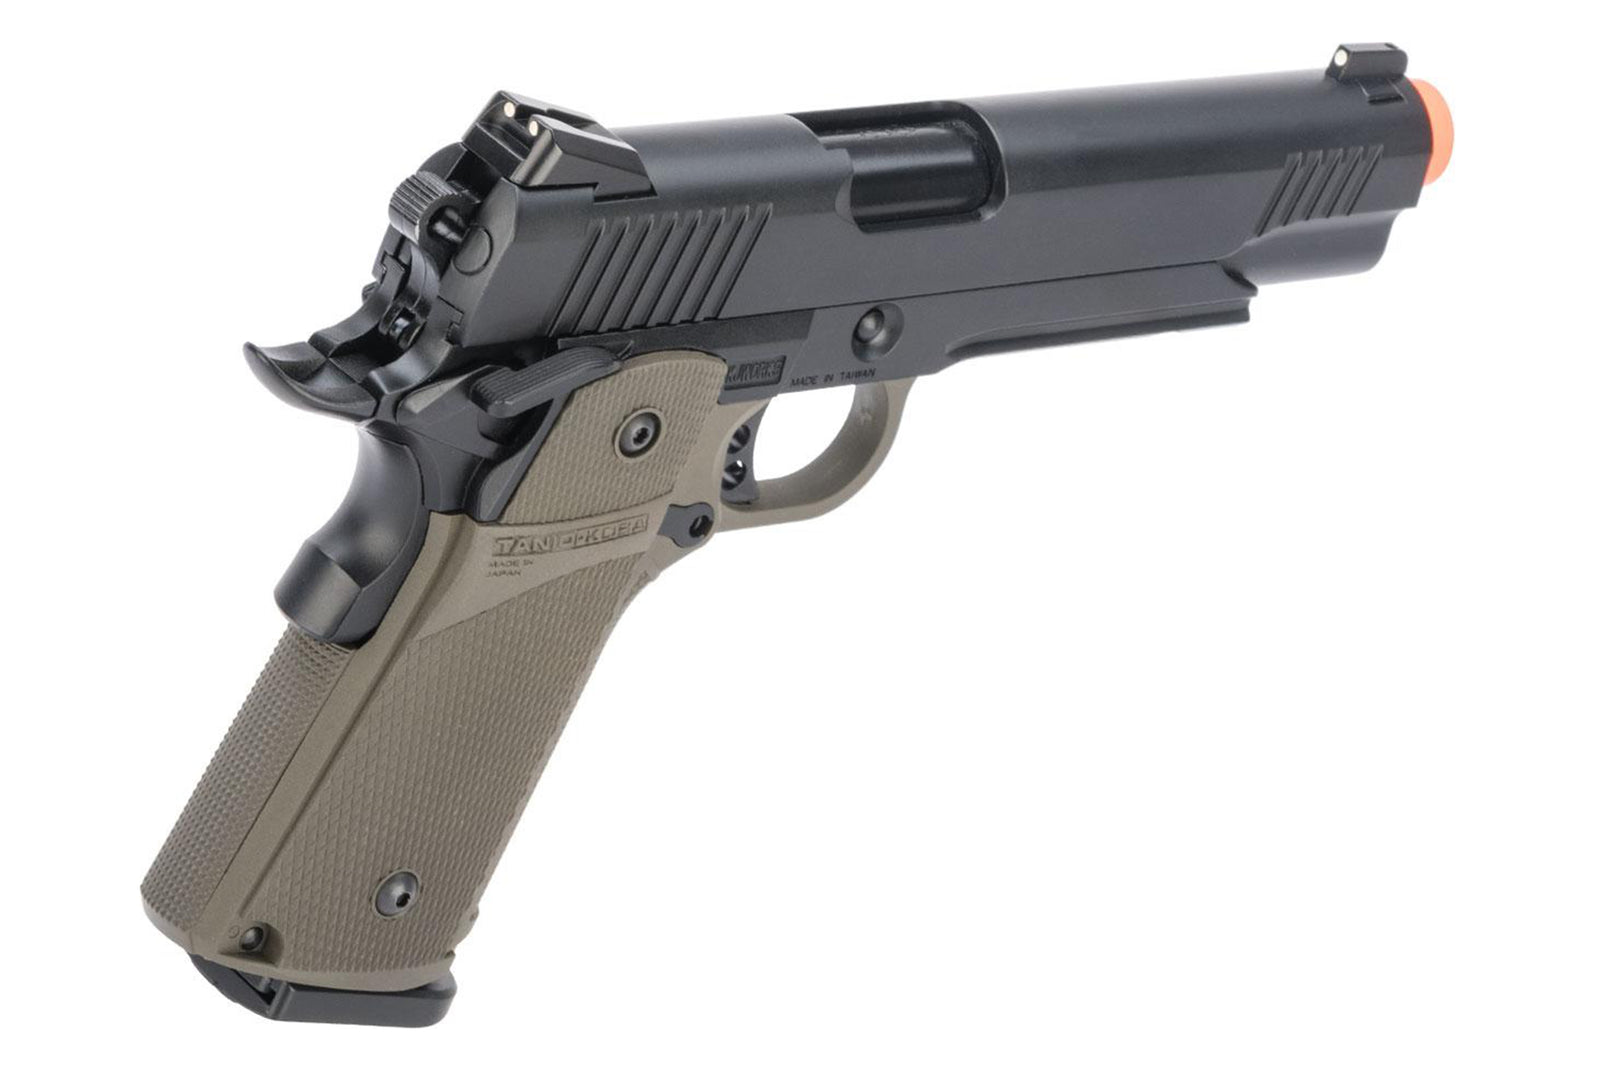 KJW Full Metal Custom 1911 Tactical HI-CAPA Gas Blowback - 614